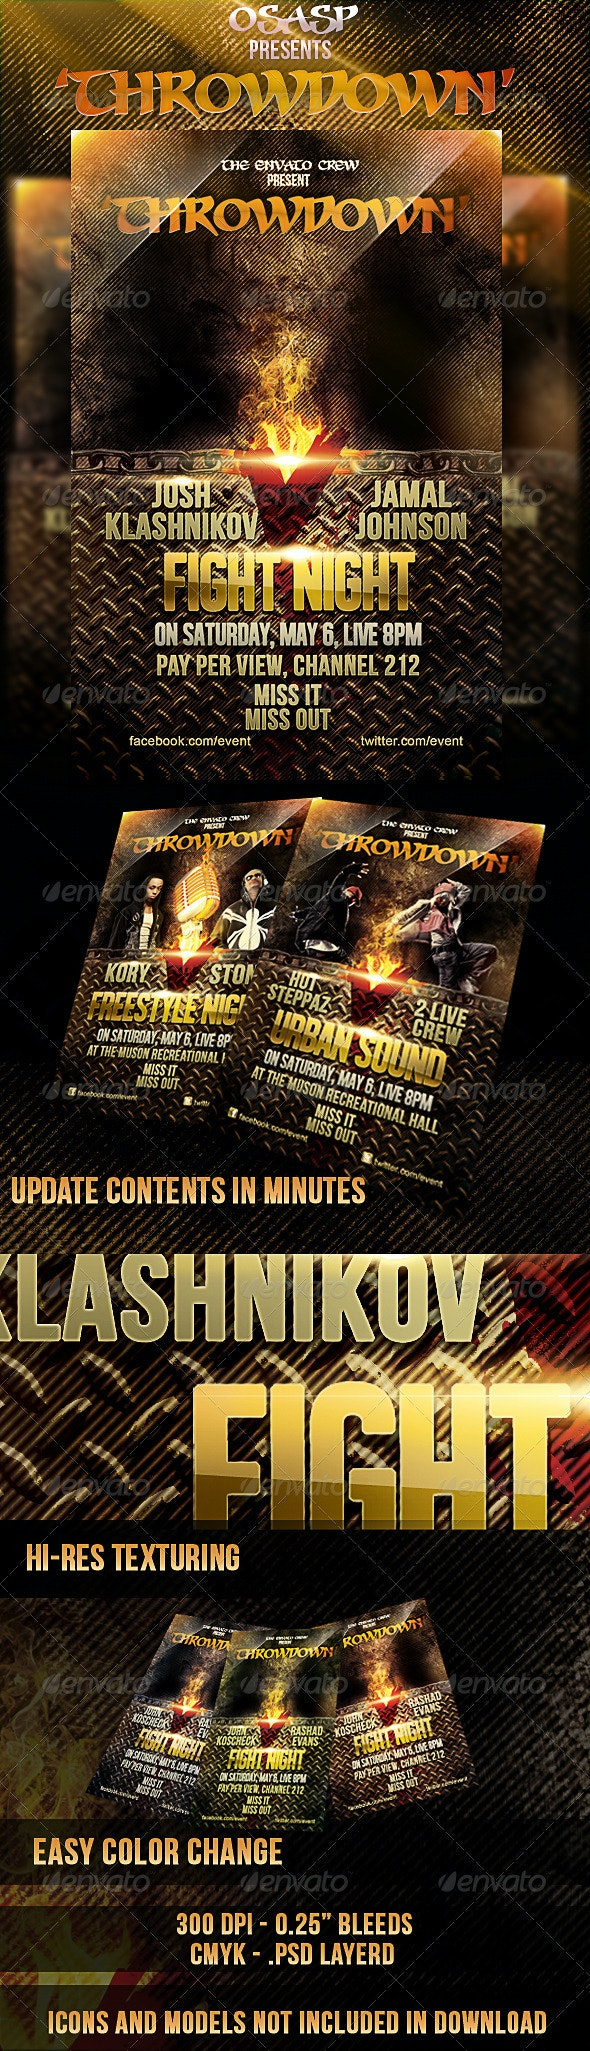 Throwdown Flyer Template - Sports Events